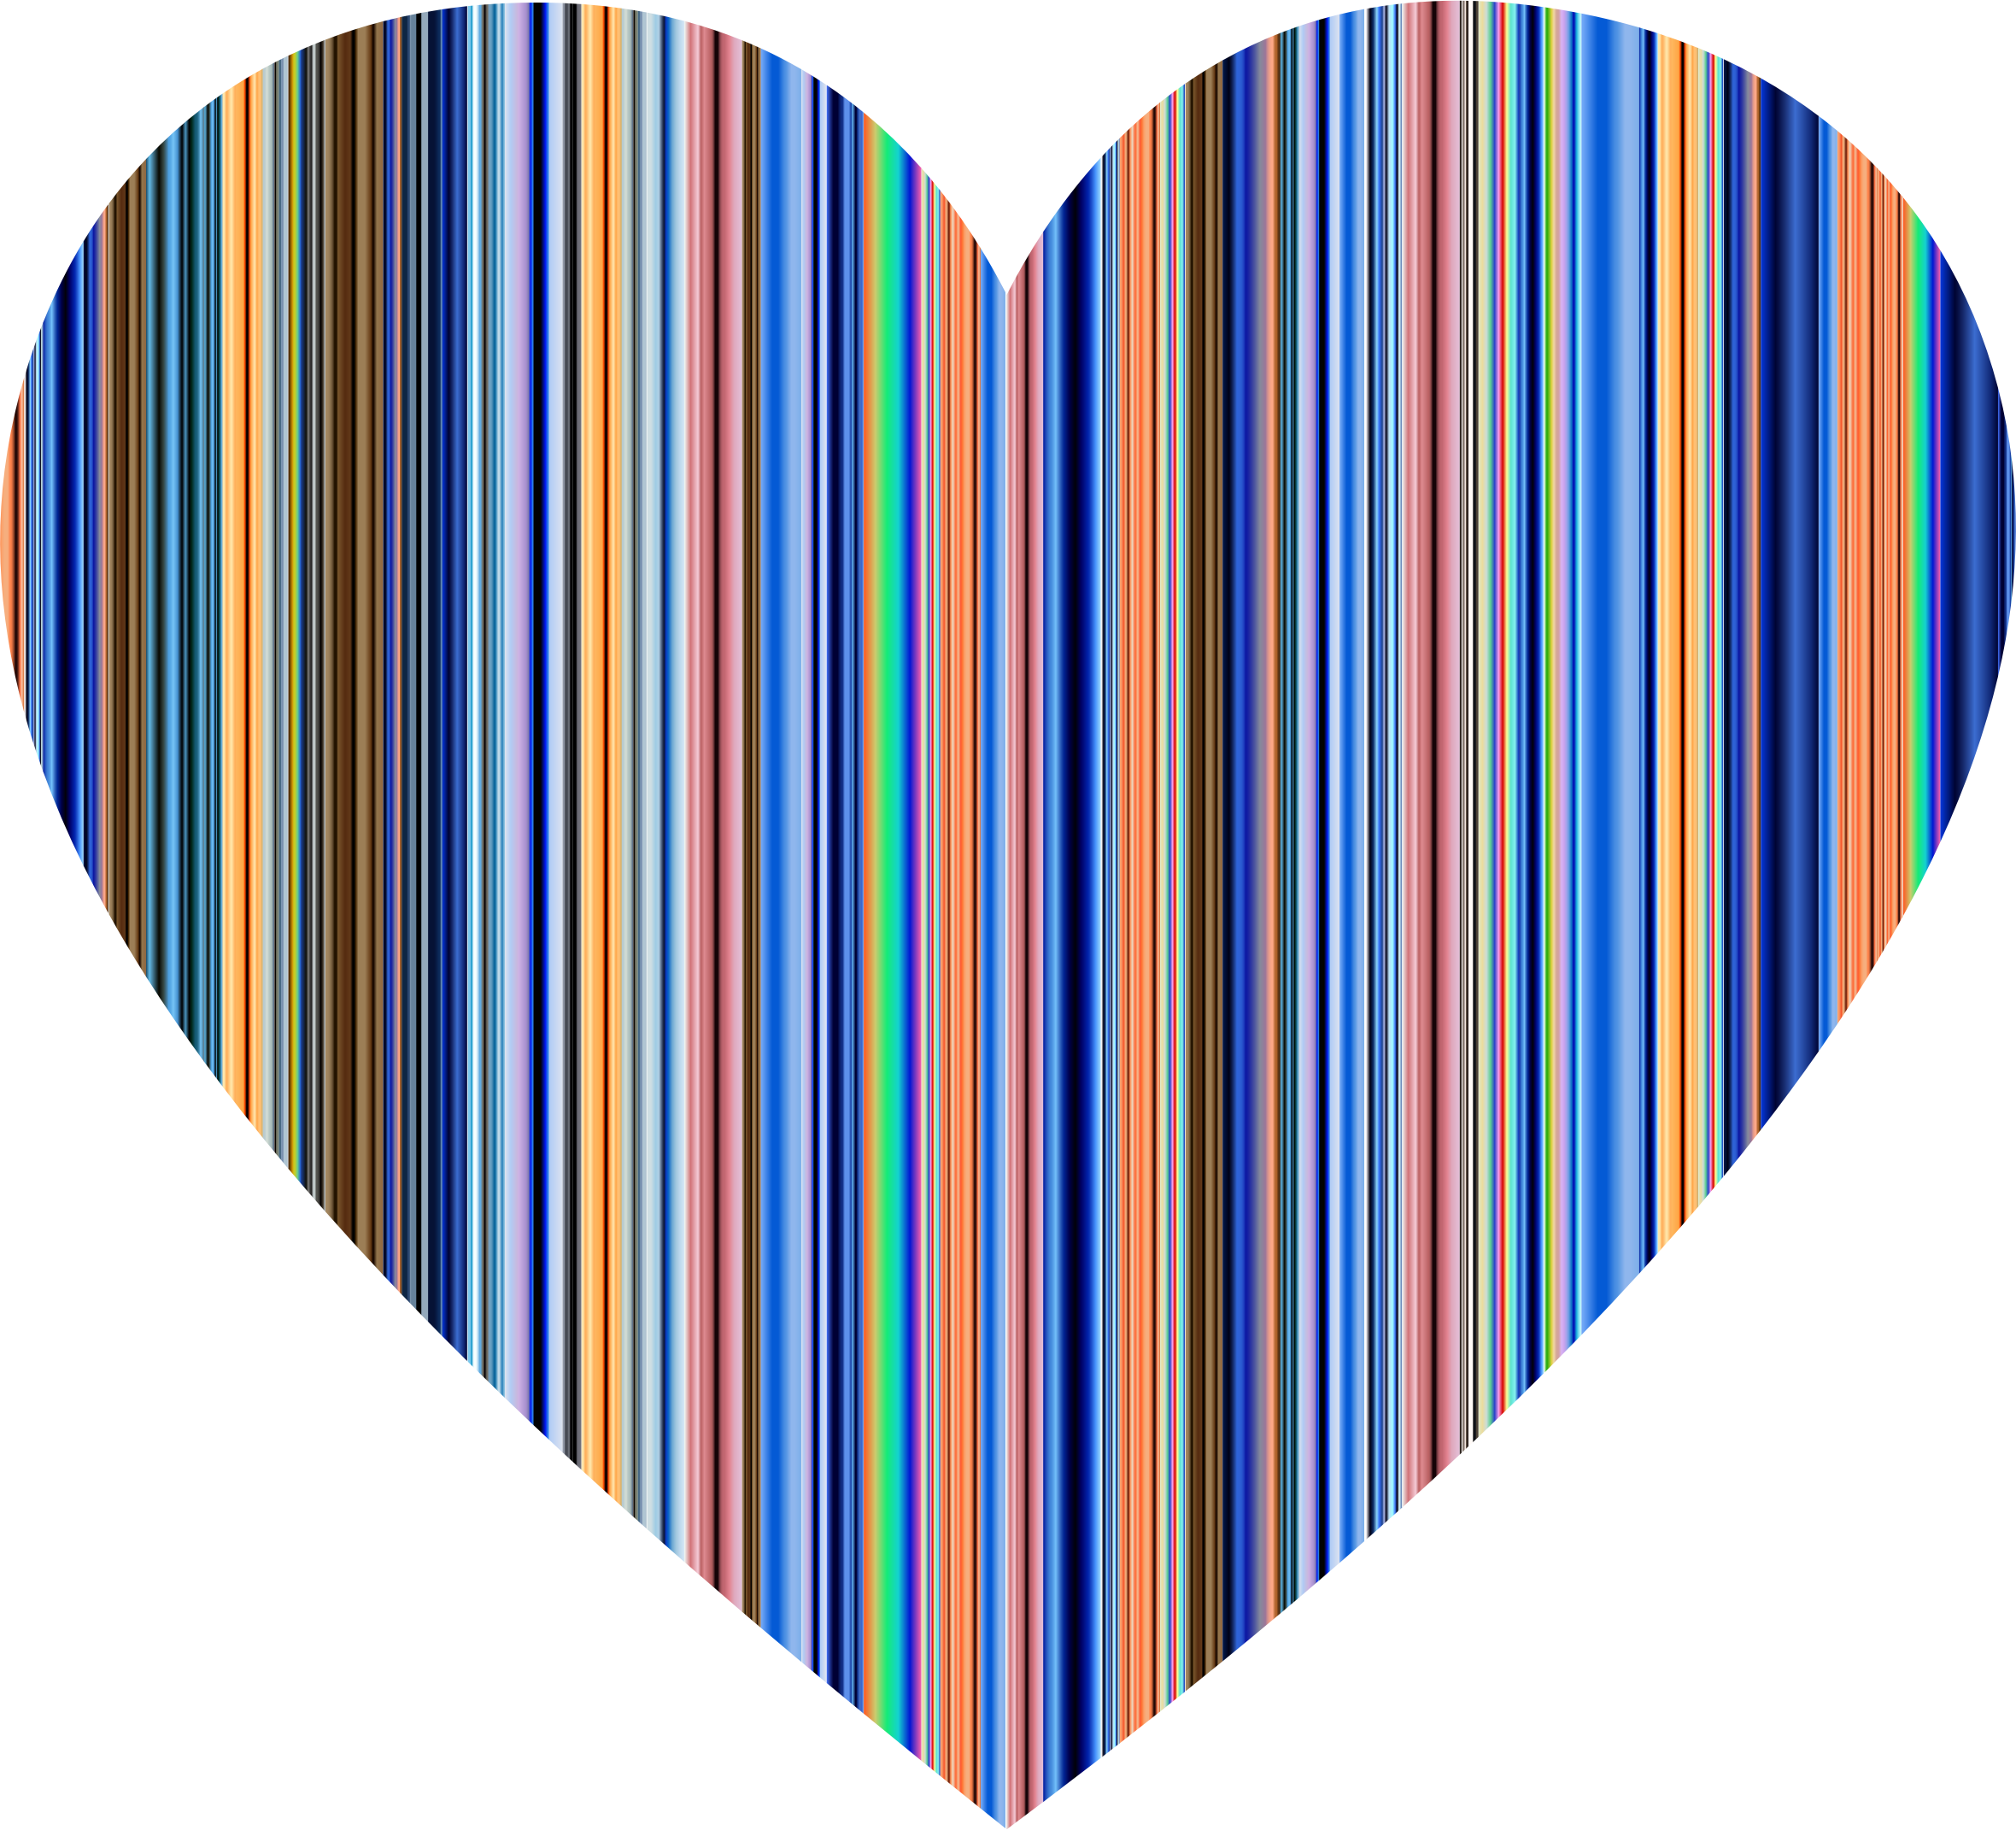 Striped heart clipart graphic transparent stock Clipart - Colorful Striped Heart graphic transparent stock